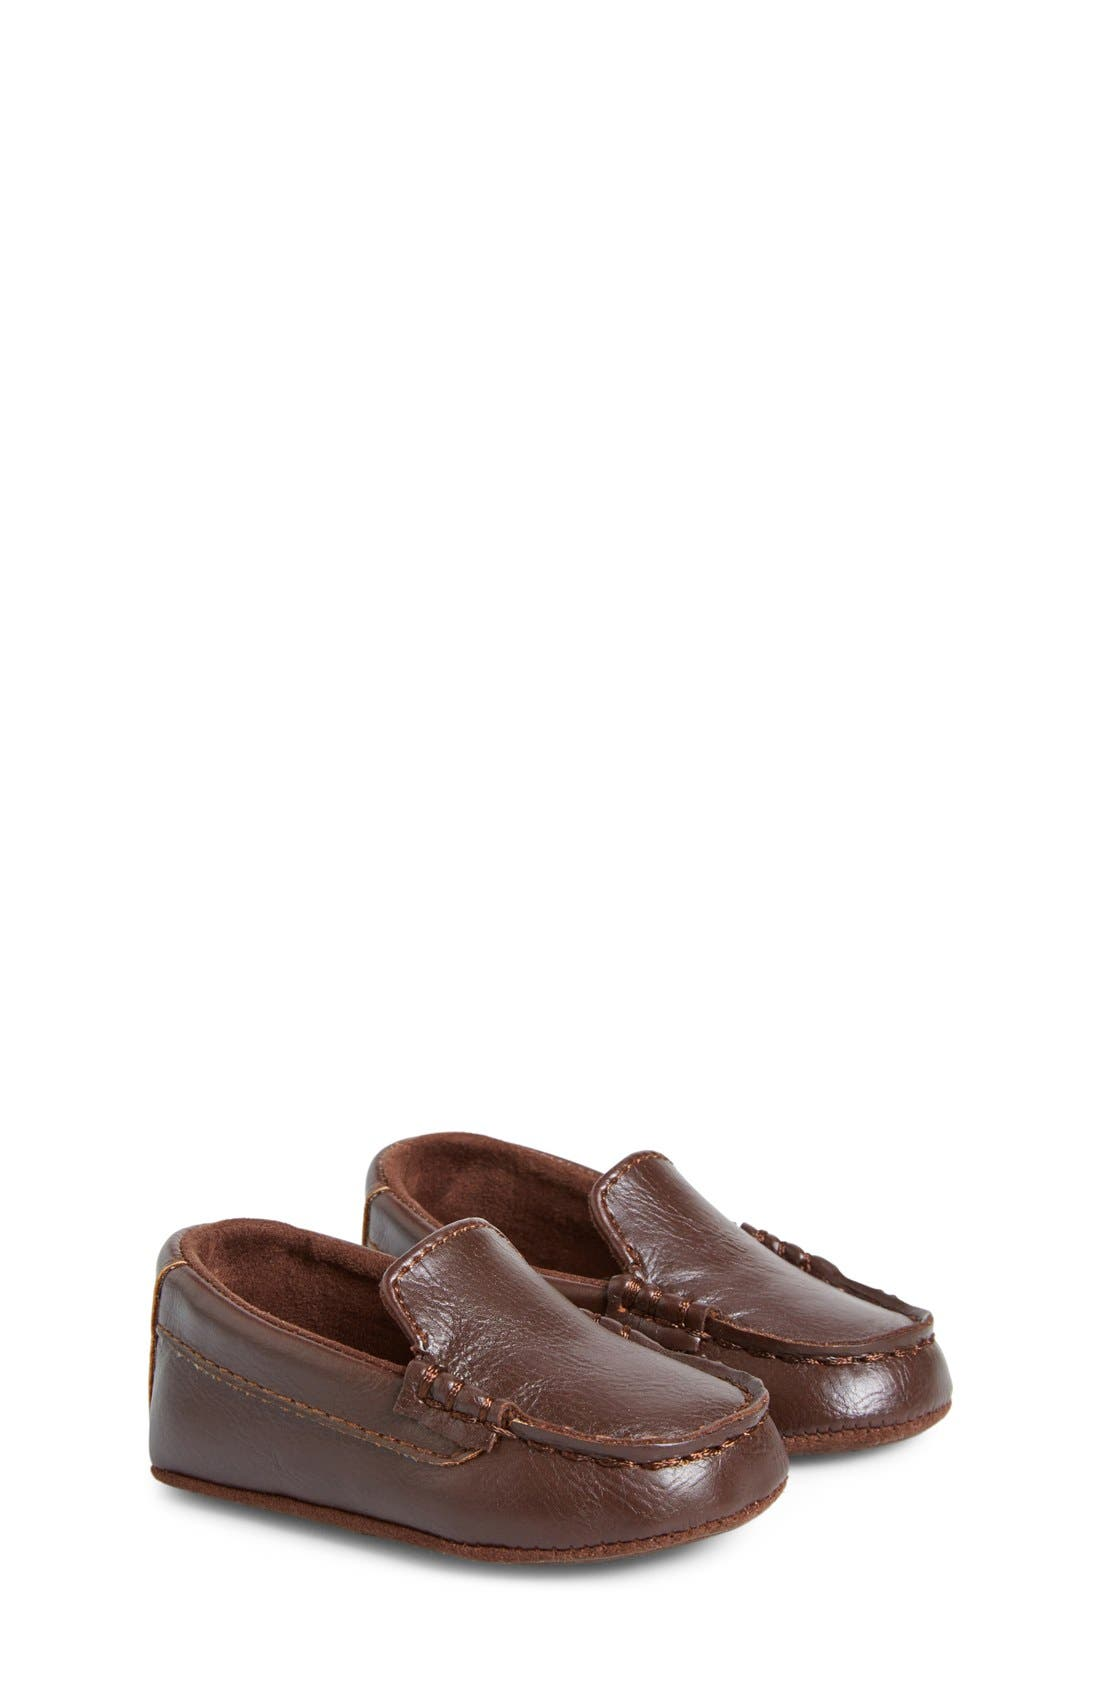 Alternate Image 1 Selected - Kenneth Cole New York 'Baby Driver' Crib Shoe (Baby Boys)